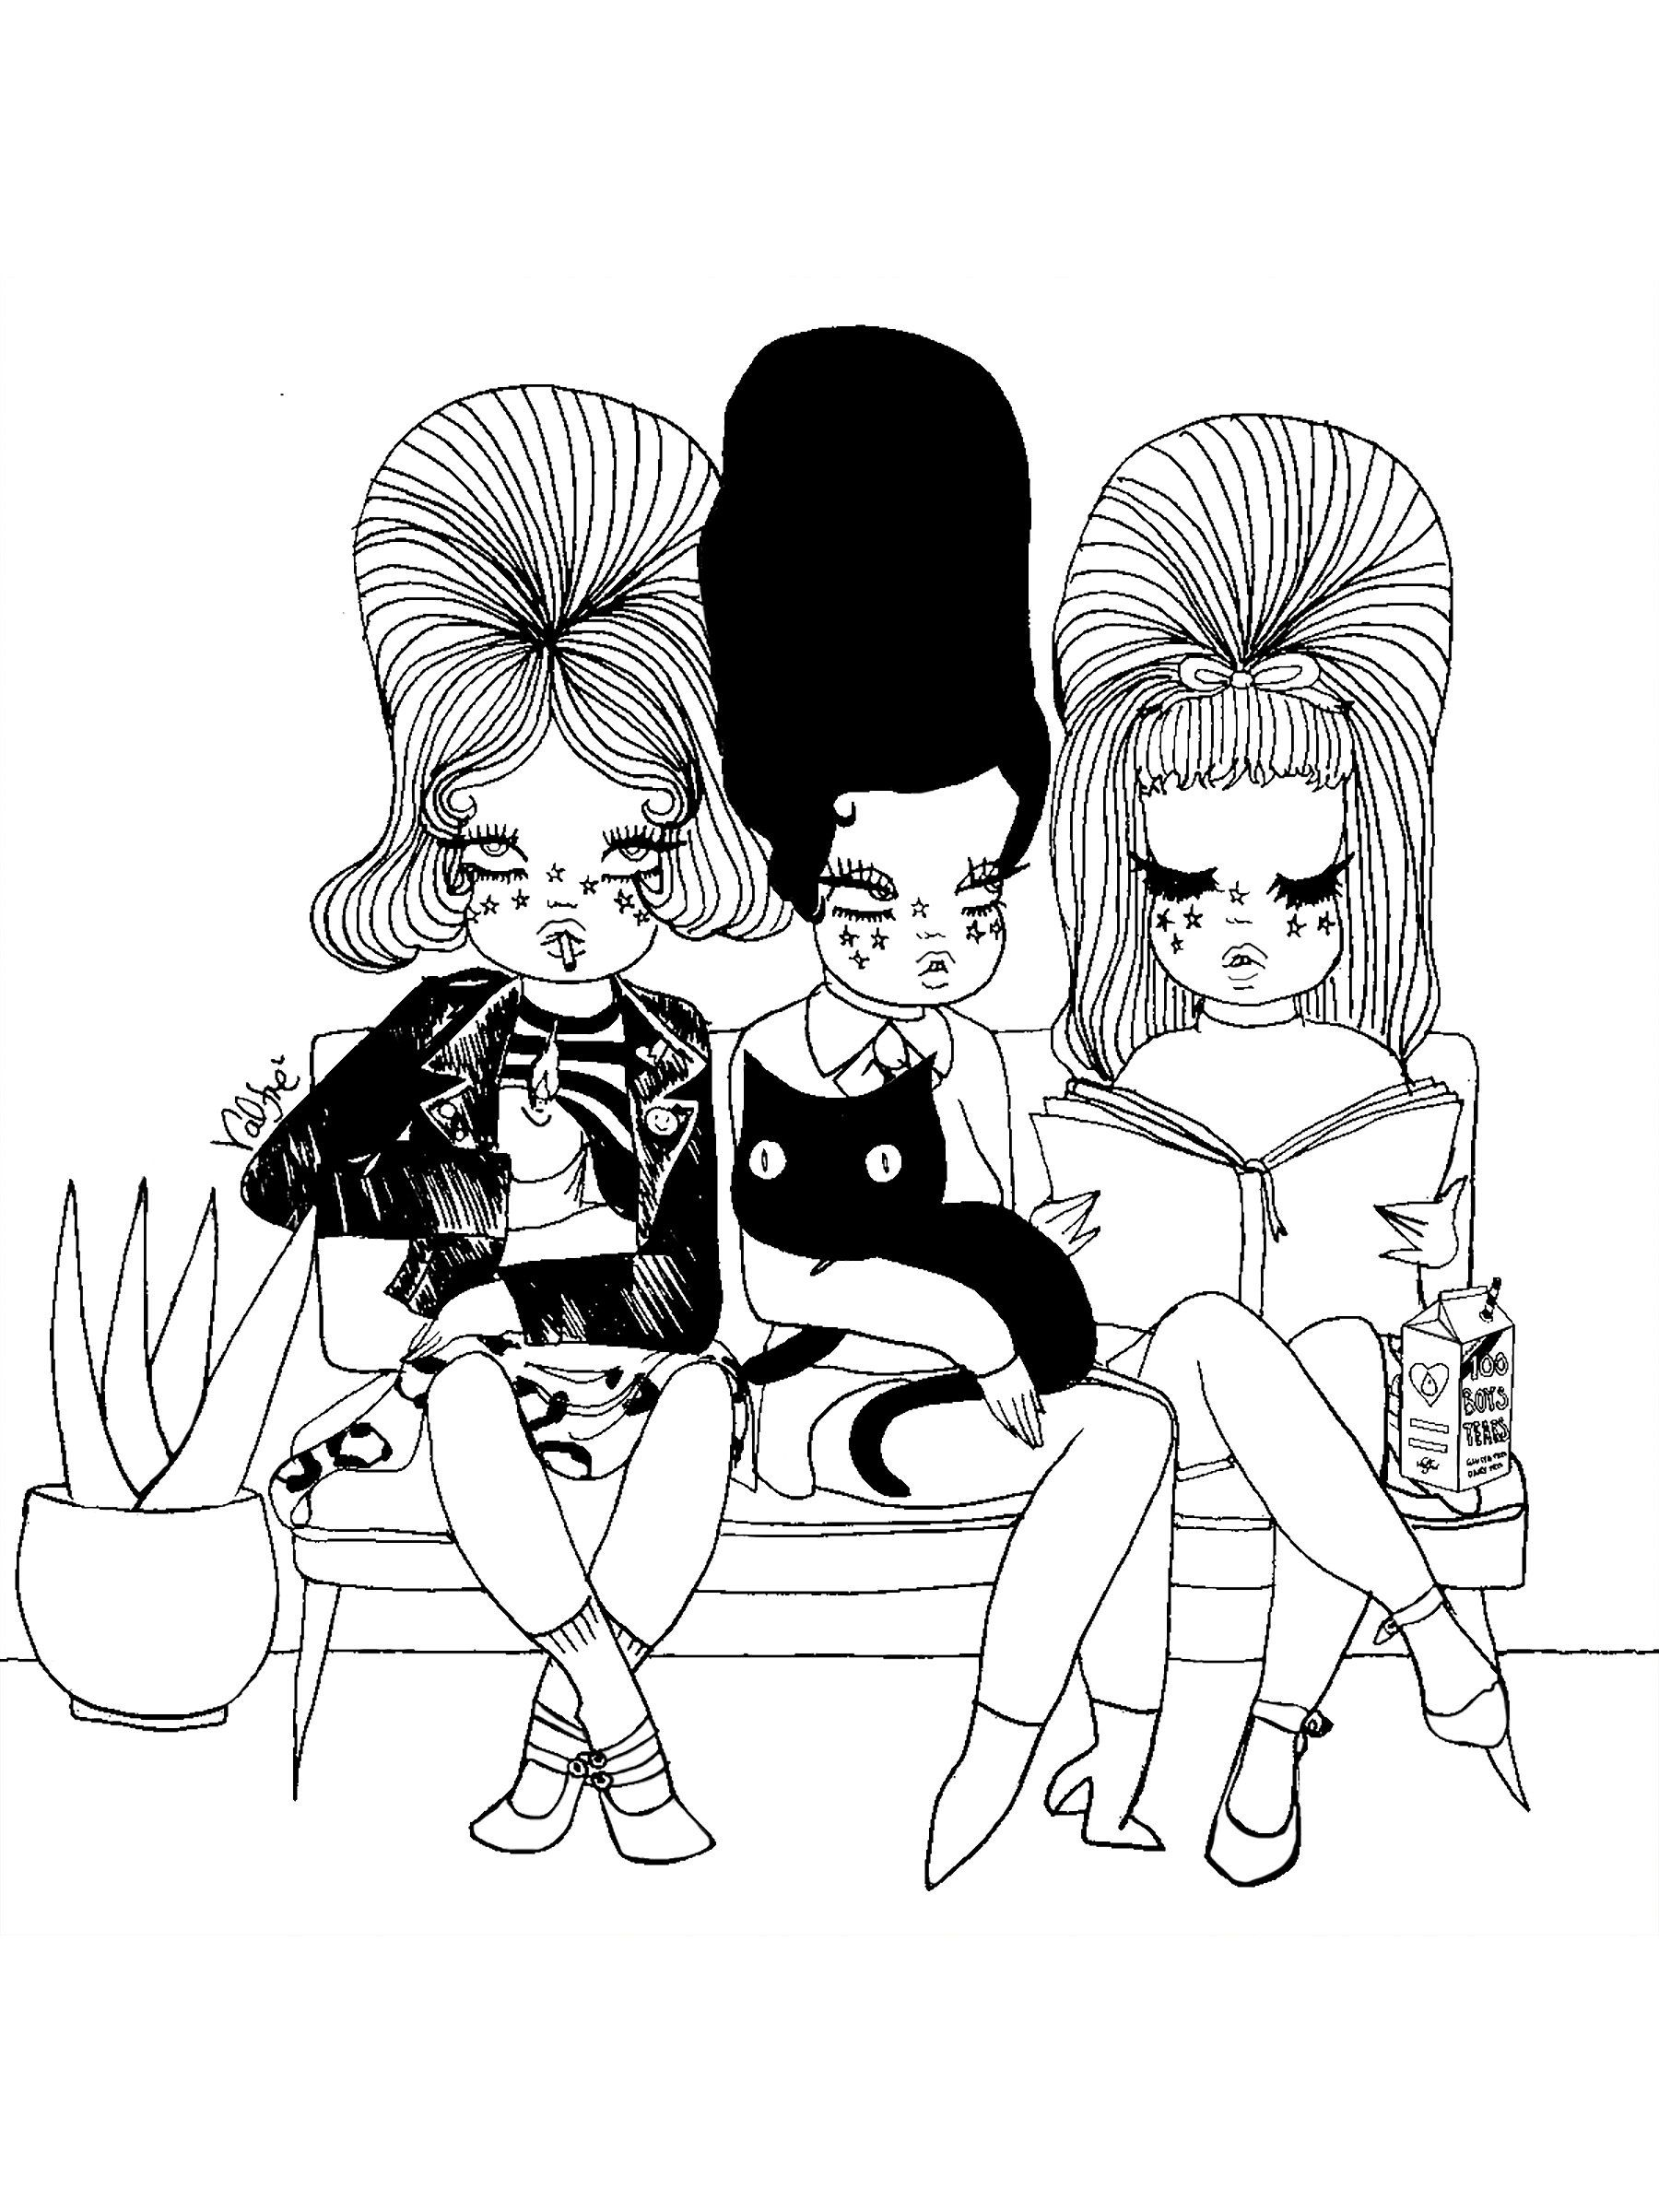 Waiting Room Valfre Coloring Page | Coloring Pages, Adult